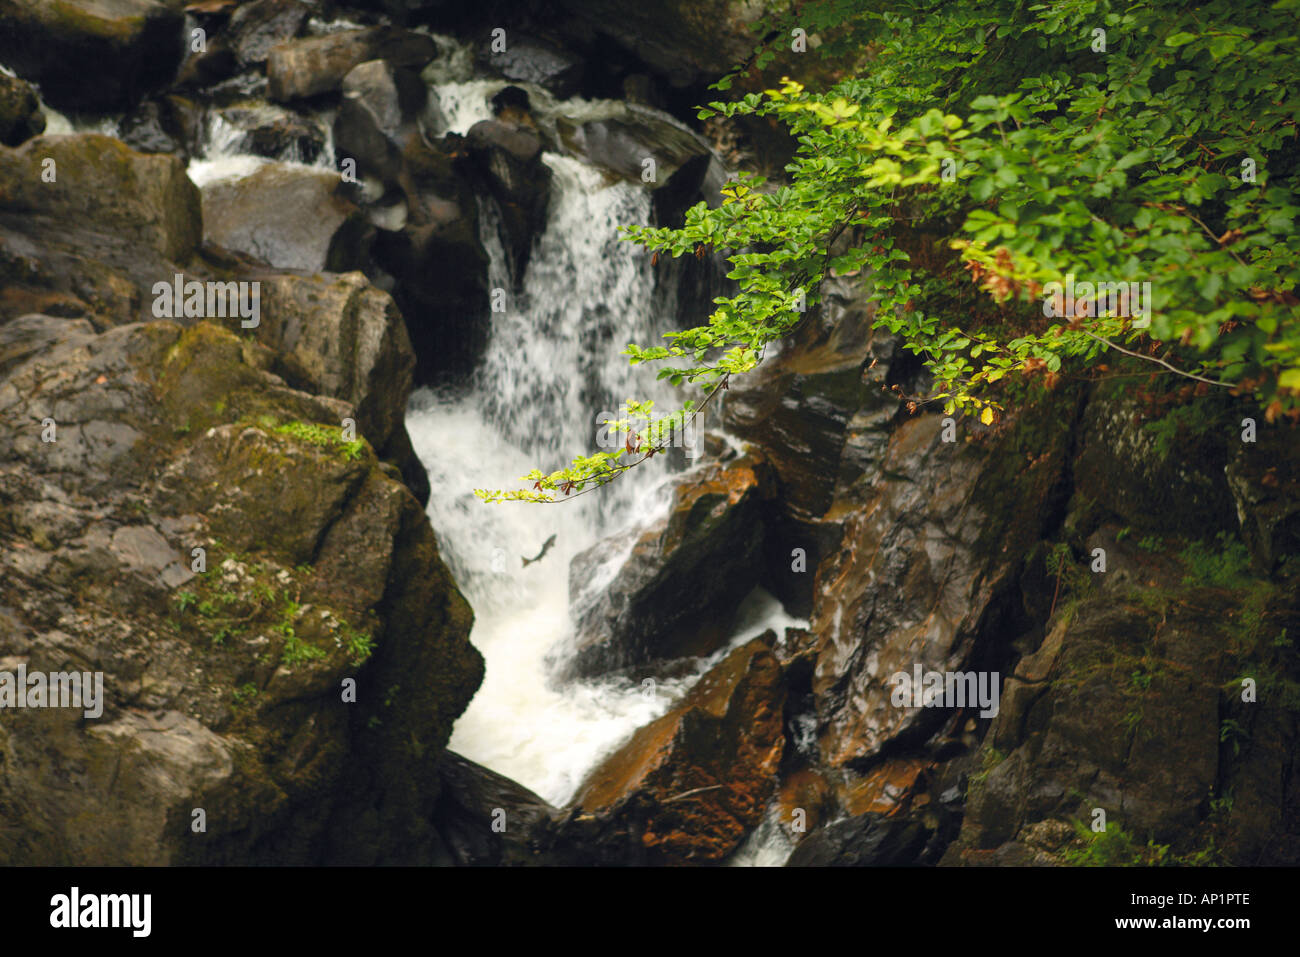 Salmon Leaping Up Black Linn Falls On The River Braan The Hermitage Dunkeld Perthshire Scotland UK - Stock Image